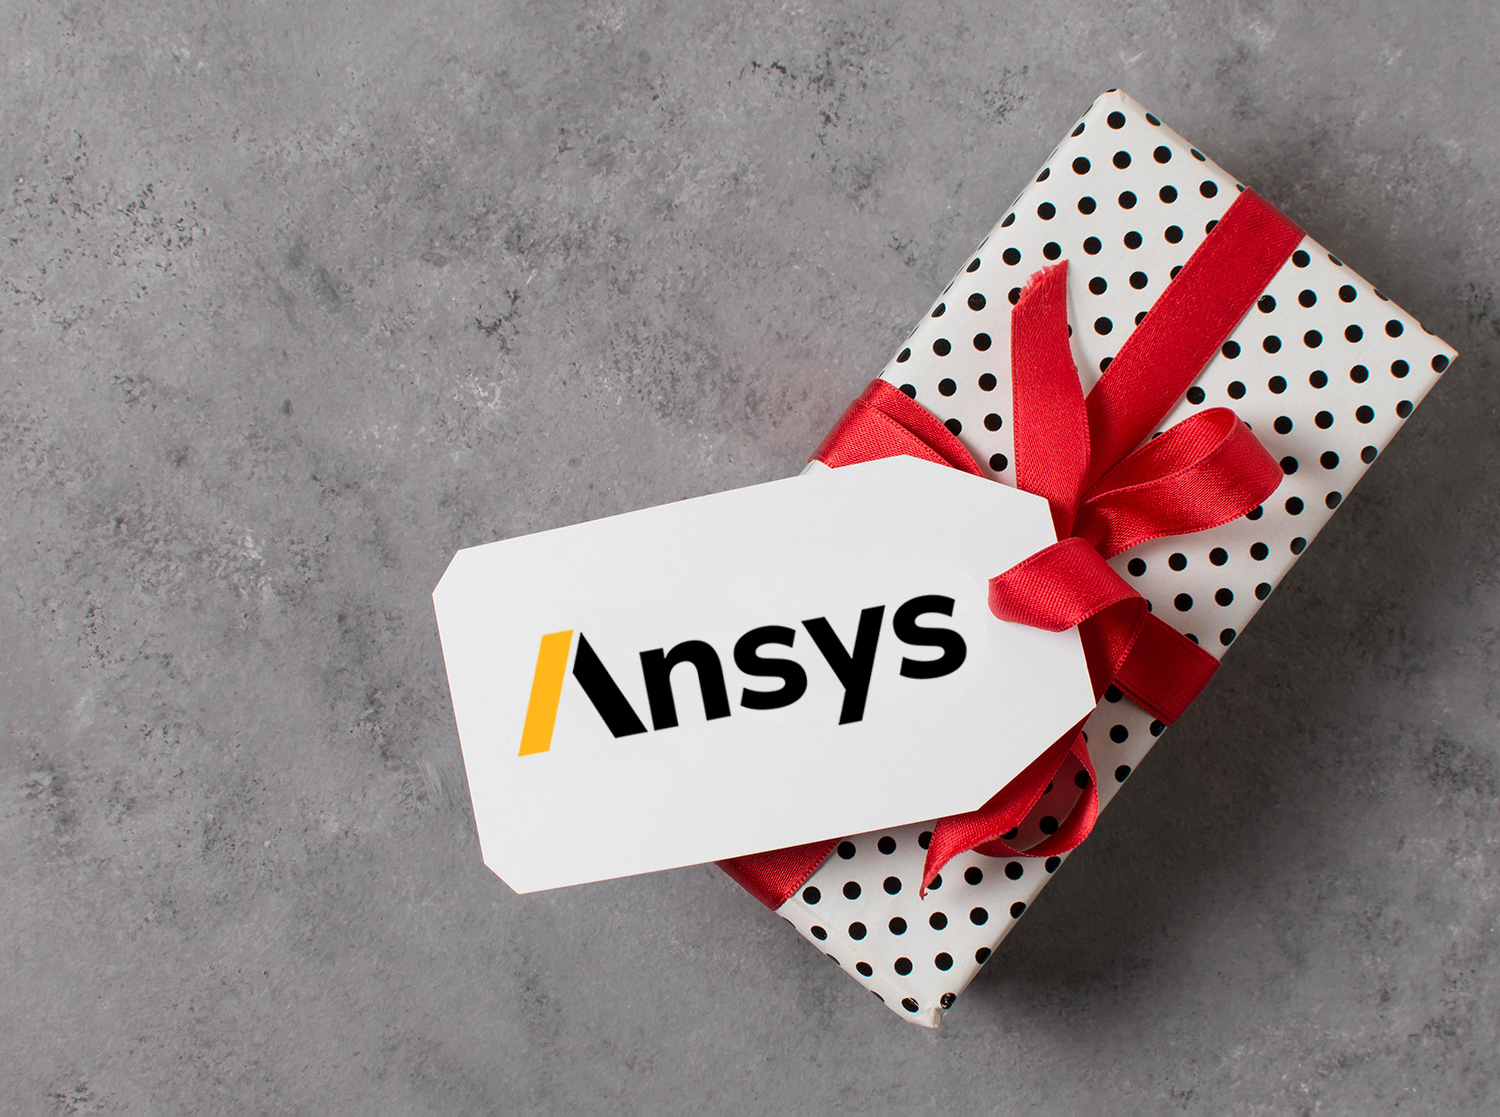 Ansys gift